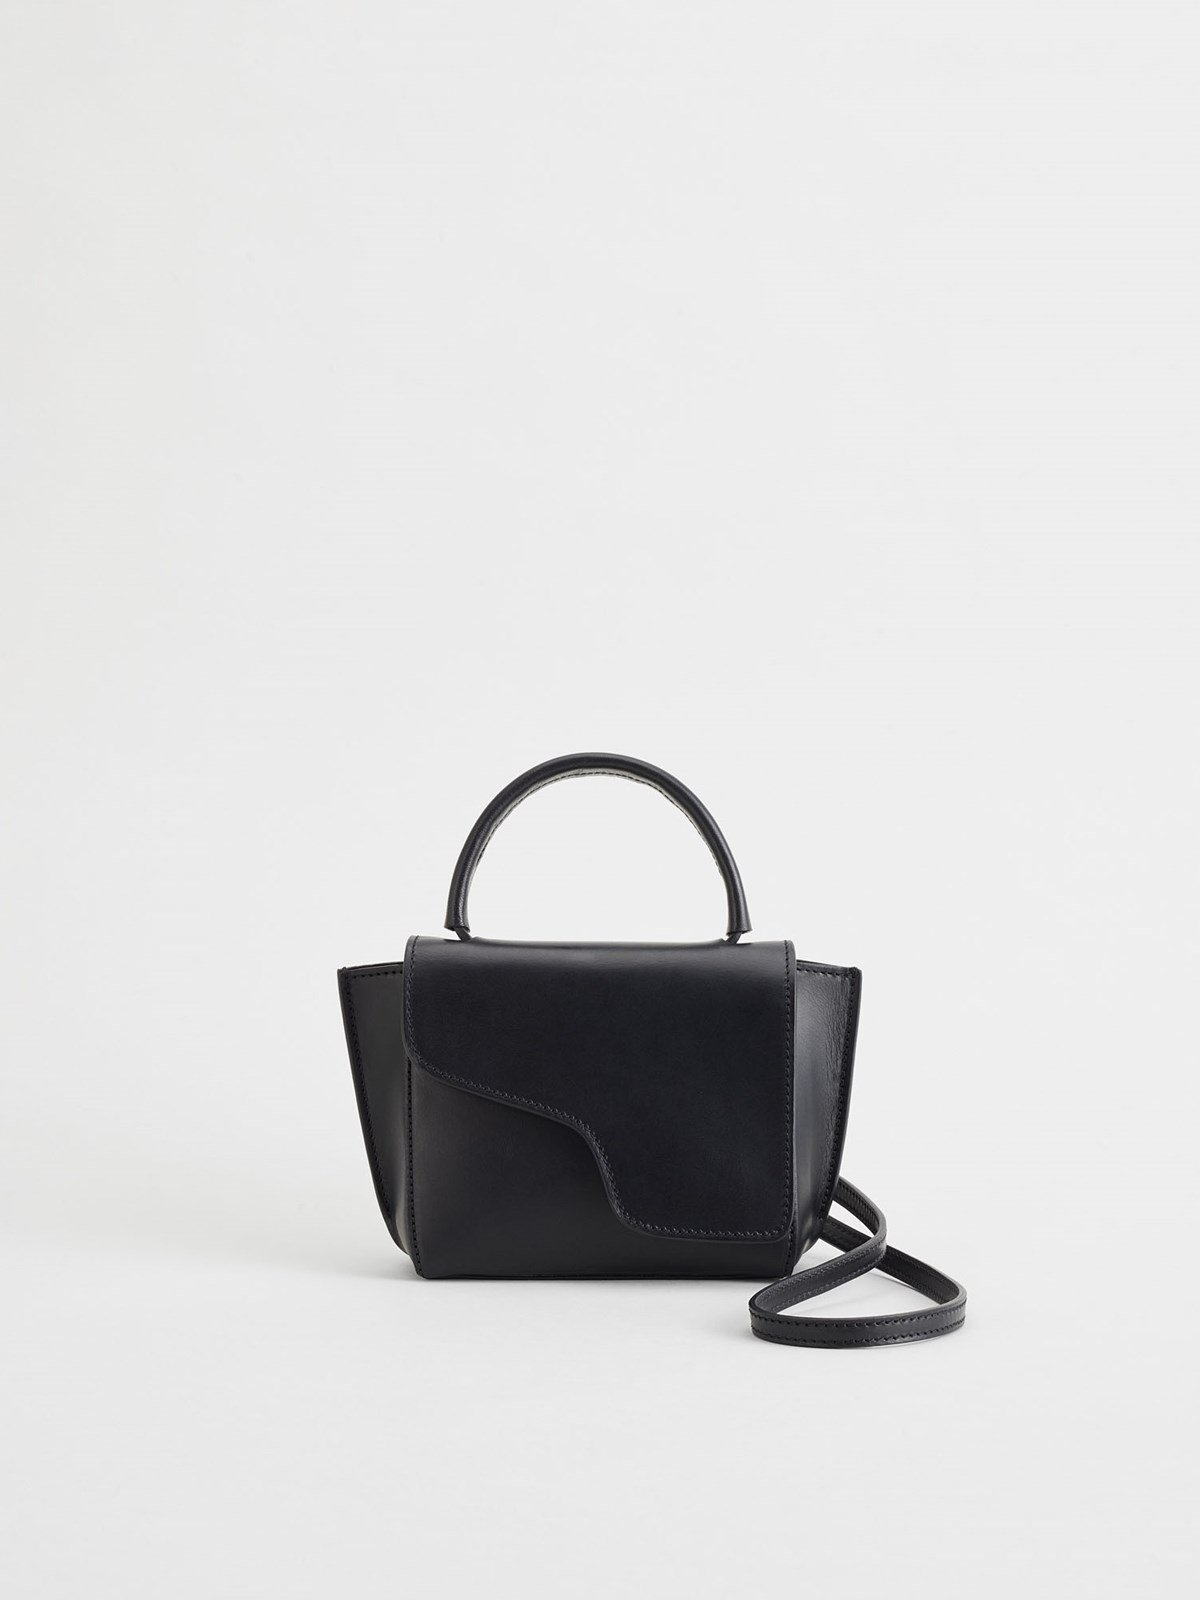 Montalcino Black Mini handbag